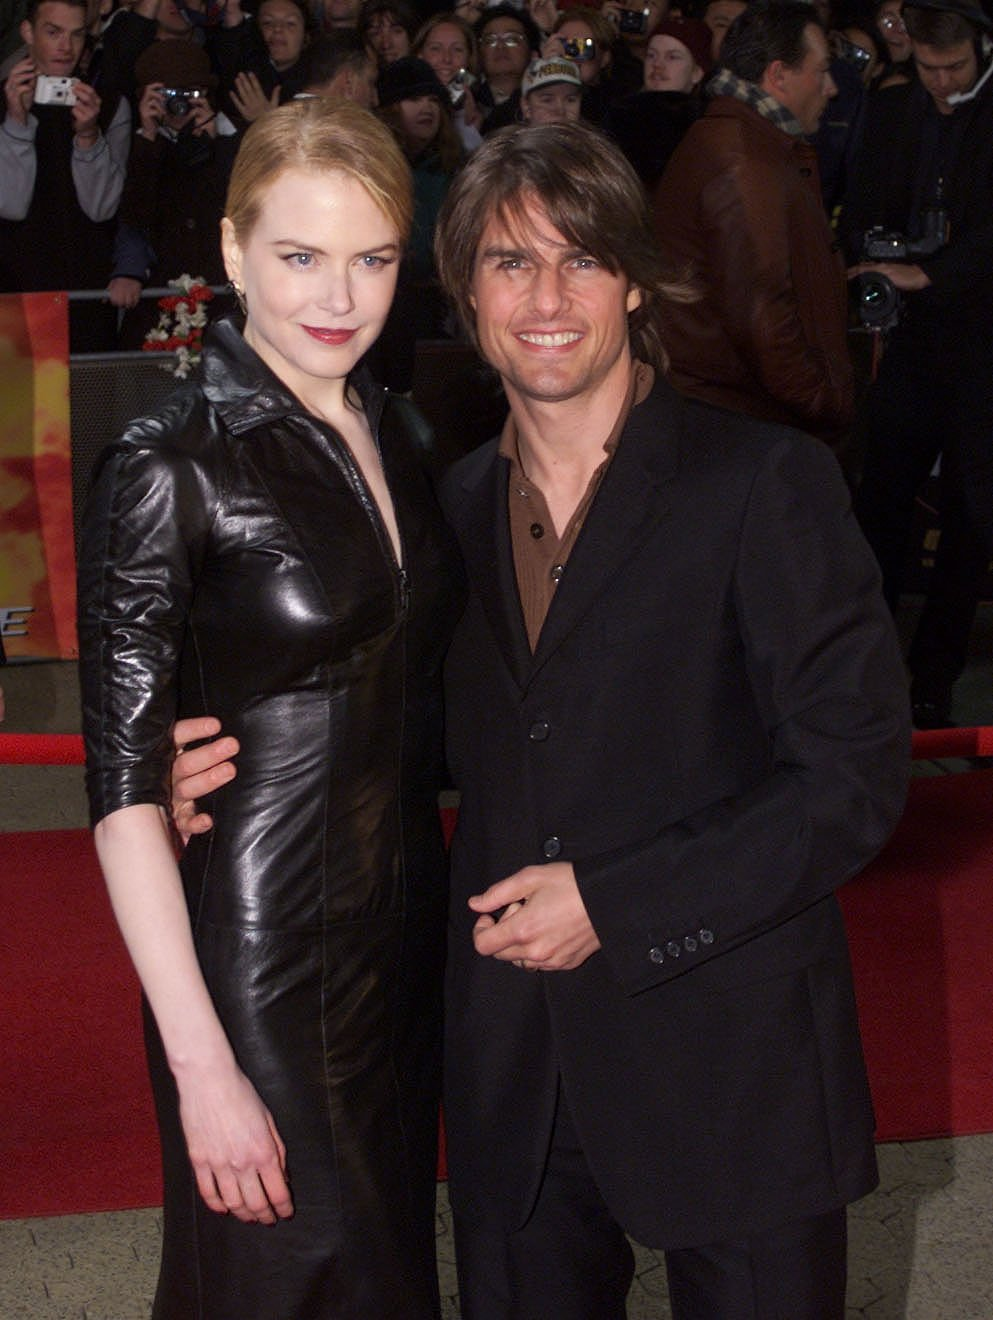 Tom Cruise and Nicole Kidman. I Image: Getty Images.